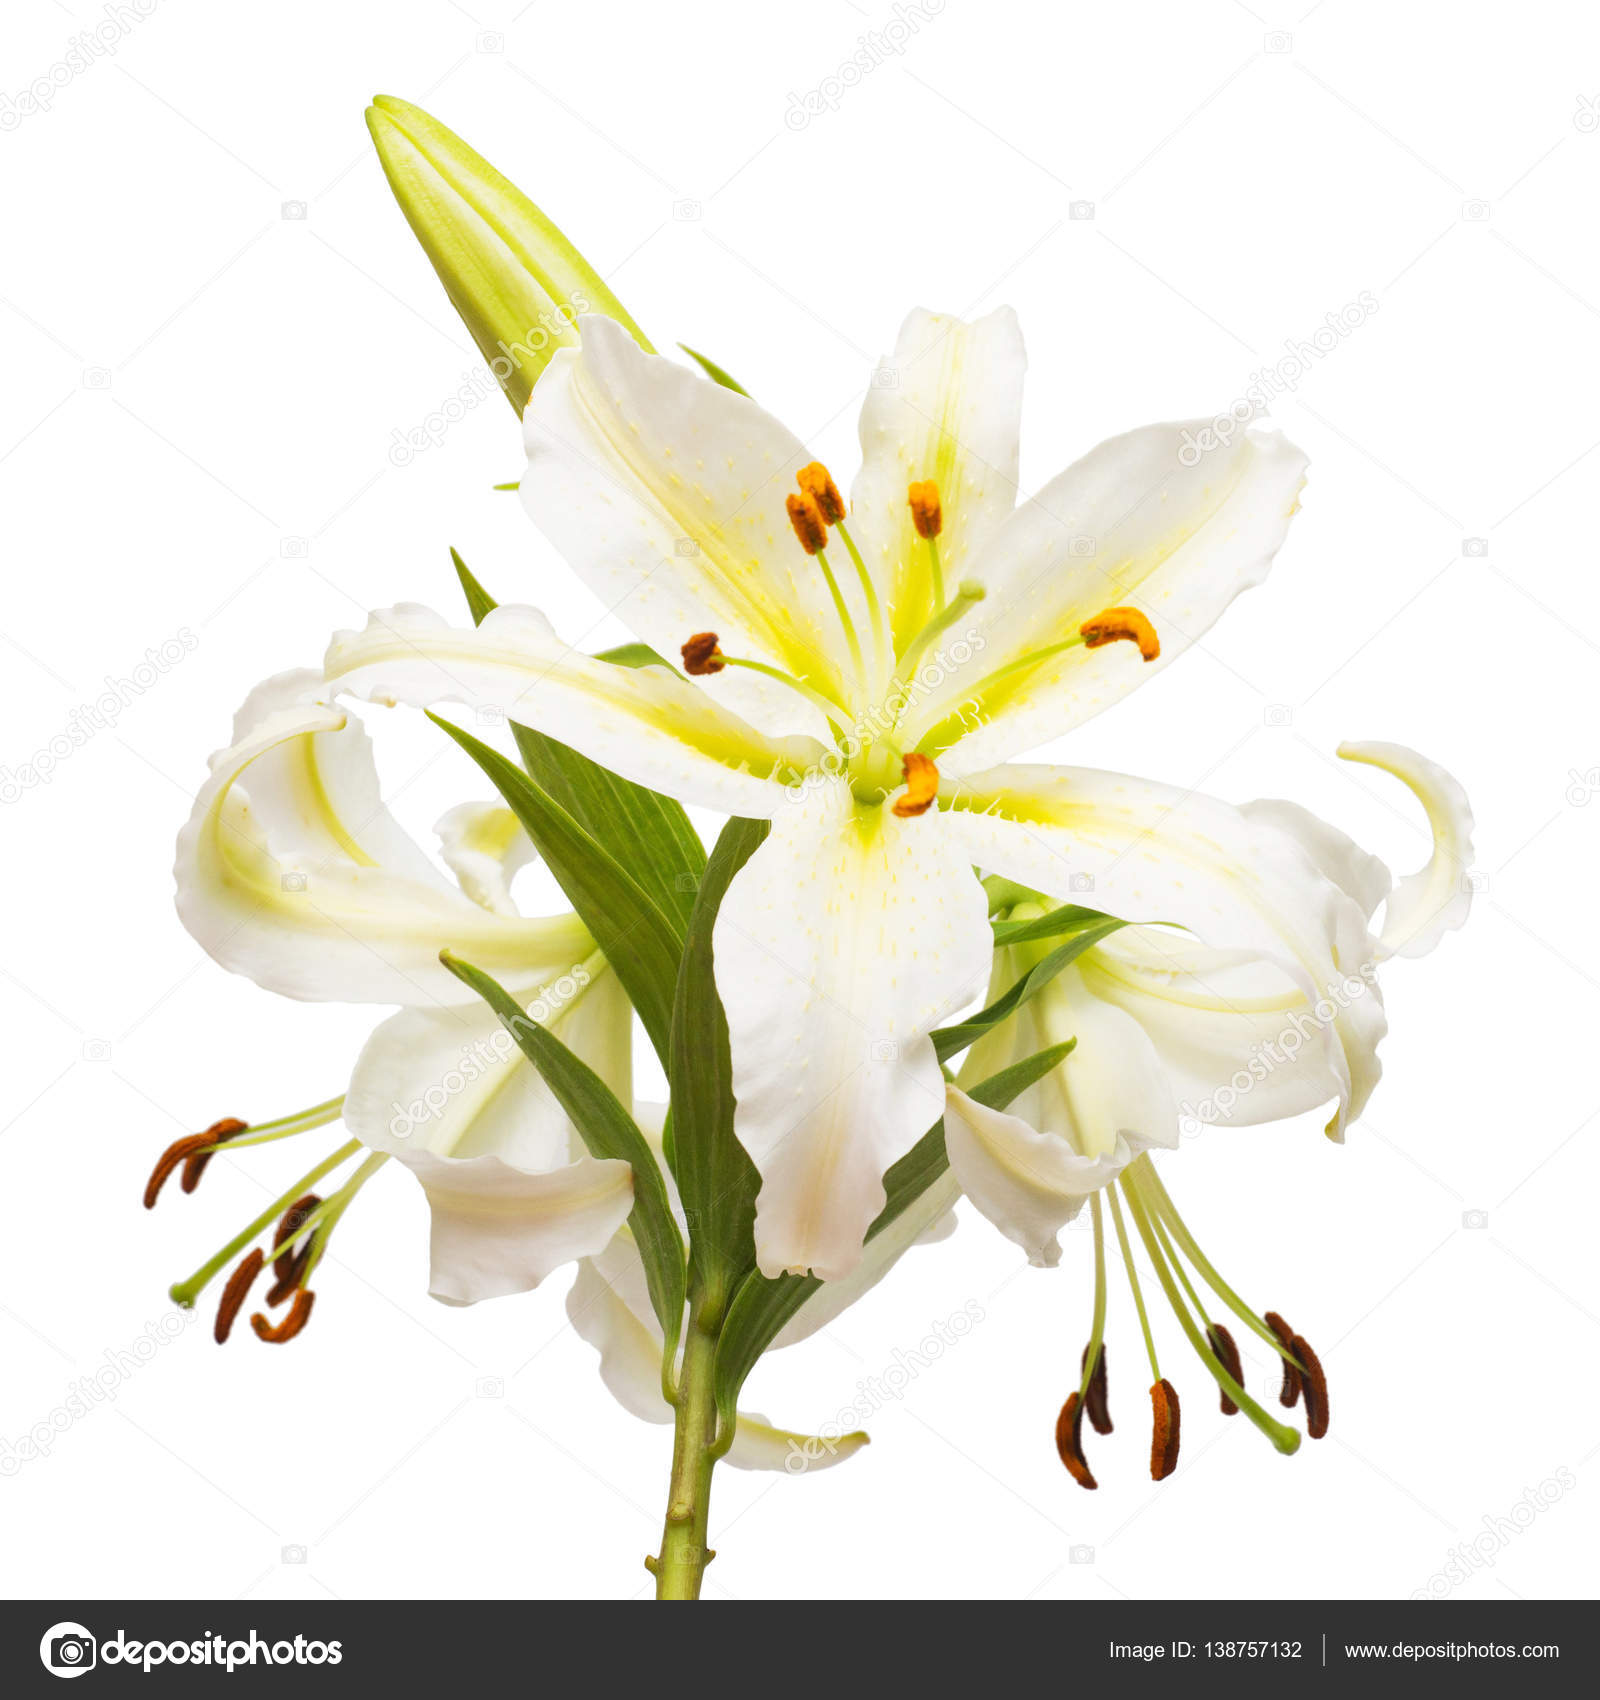 Bouquet of beautiful white lily flowers stock photo flowerstudio bouquet of beautiful white lily flowers isolated on white background flat lay top view photo by flowerstudio izmirmasajfo